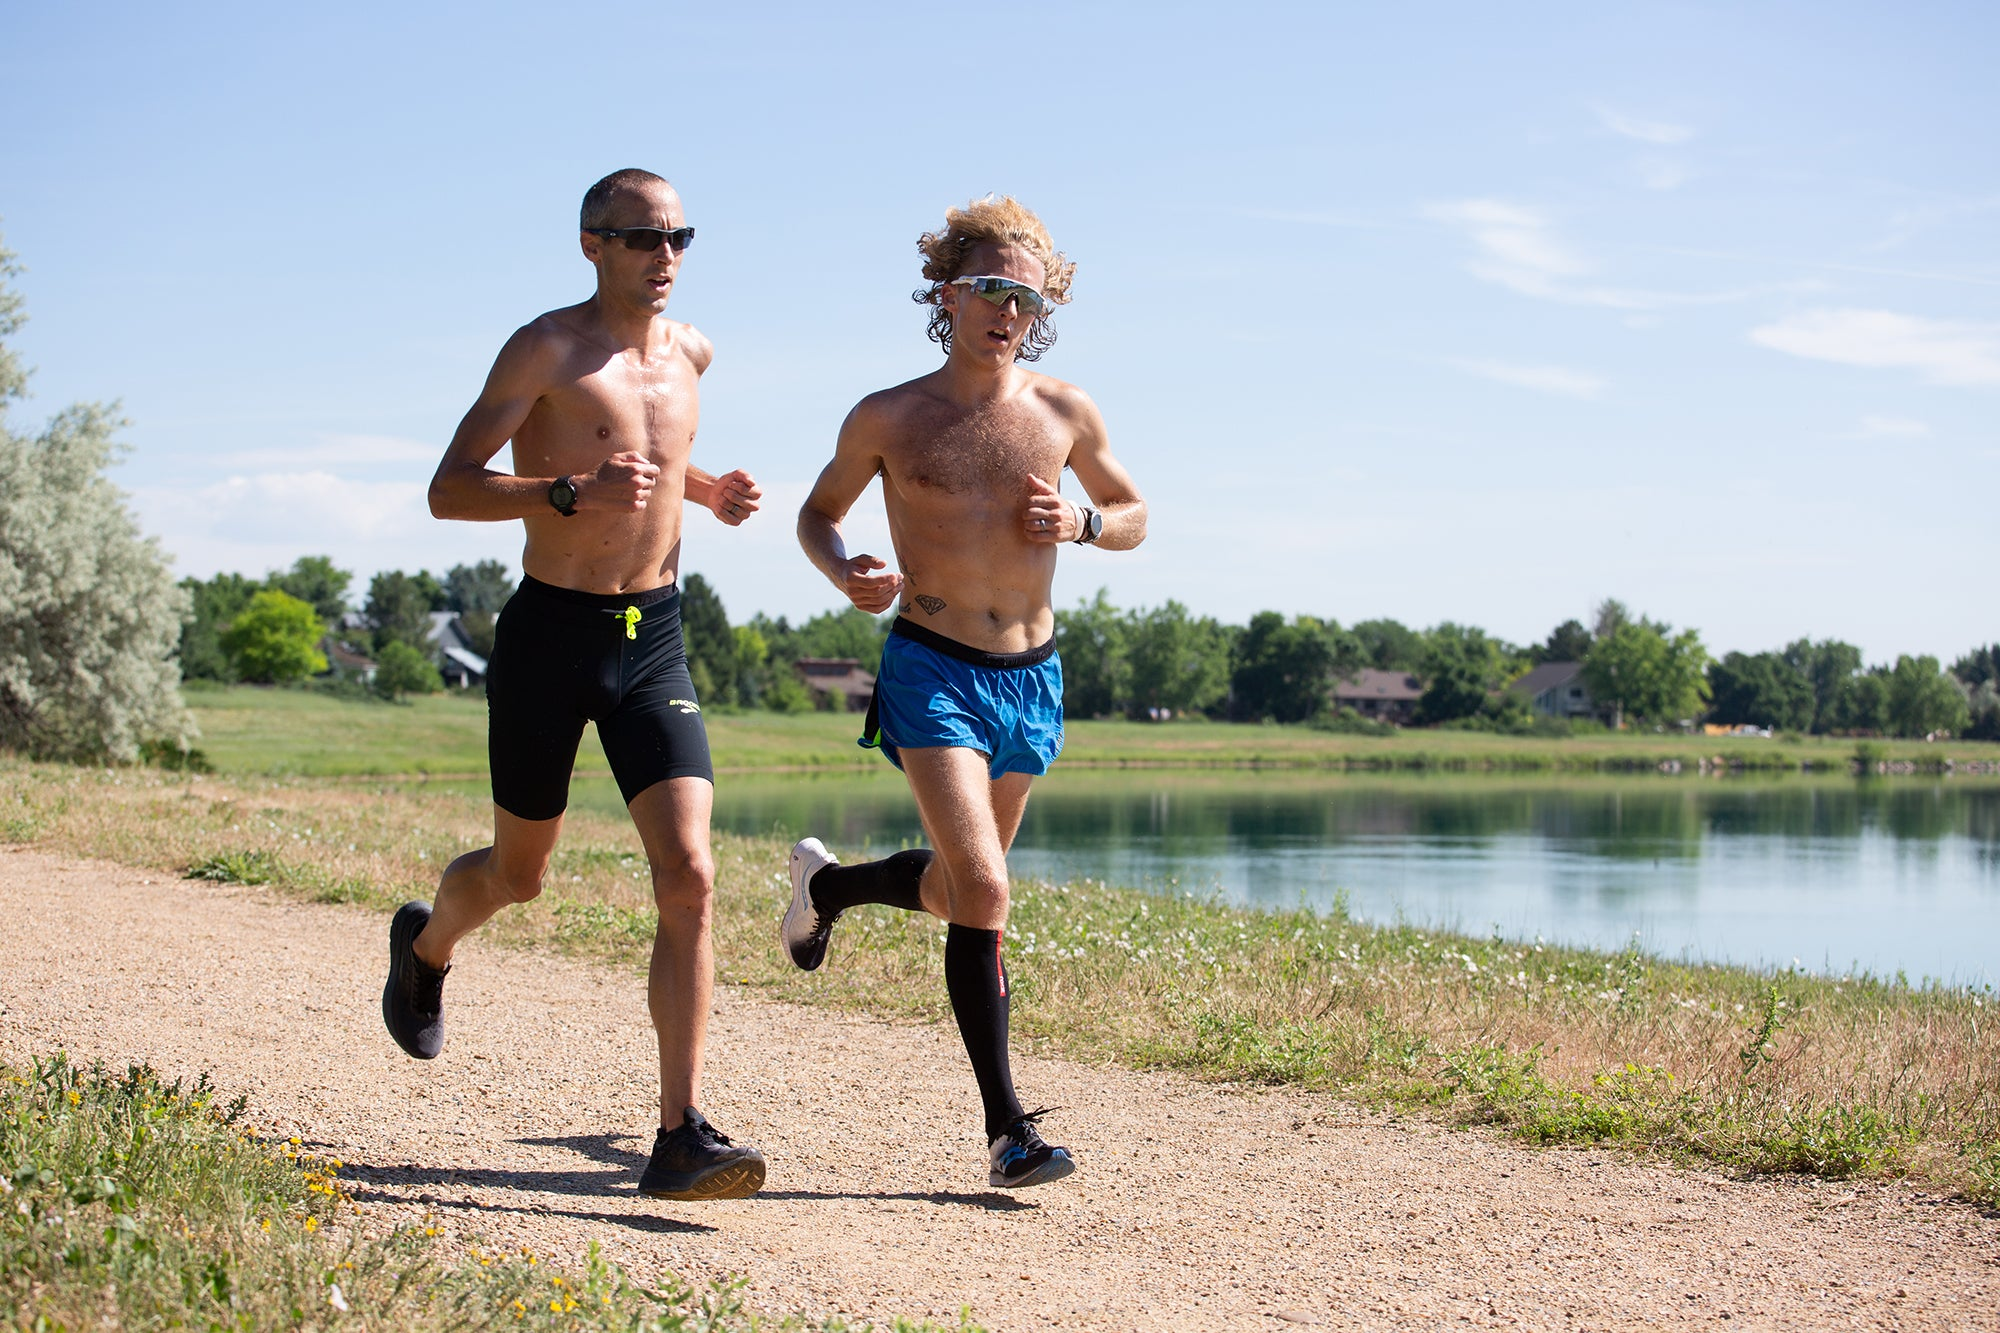 Dathan Ritzenhein and Parker Stinson training together